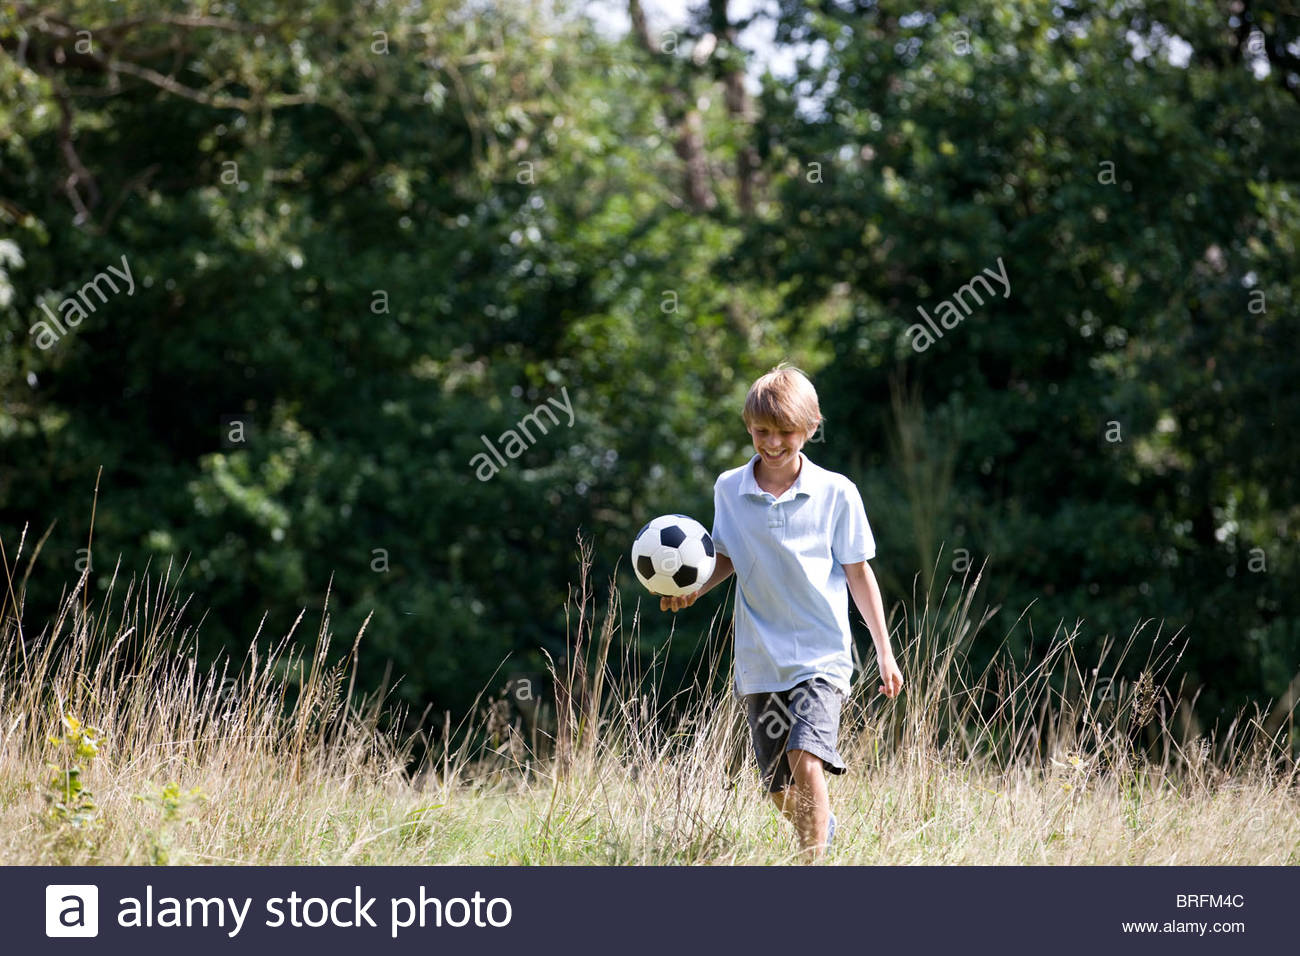 A young boy playing football in a field - Stock Image